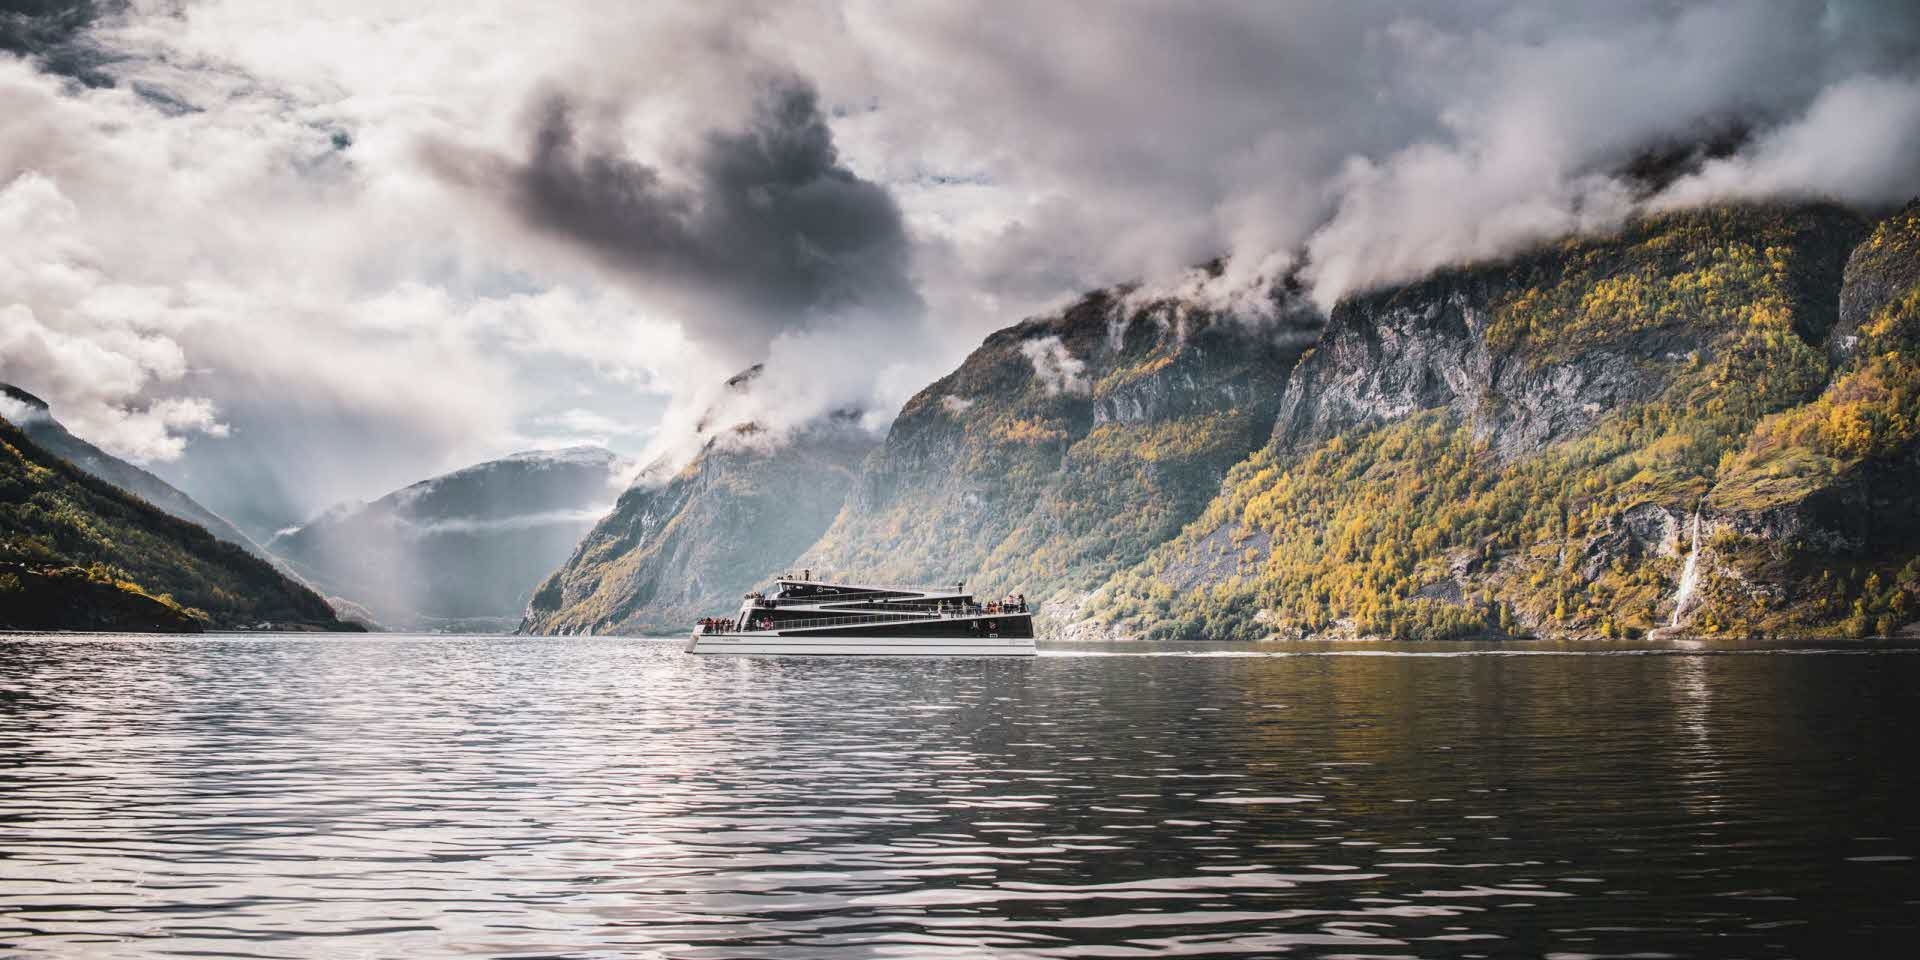 Future of The Fjords is seen in distance as sailing on cloudy and calm on the famous UNESCO Naeroyfjord in autumn